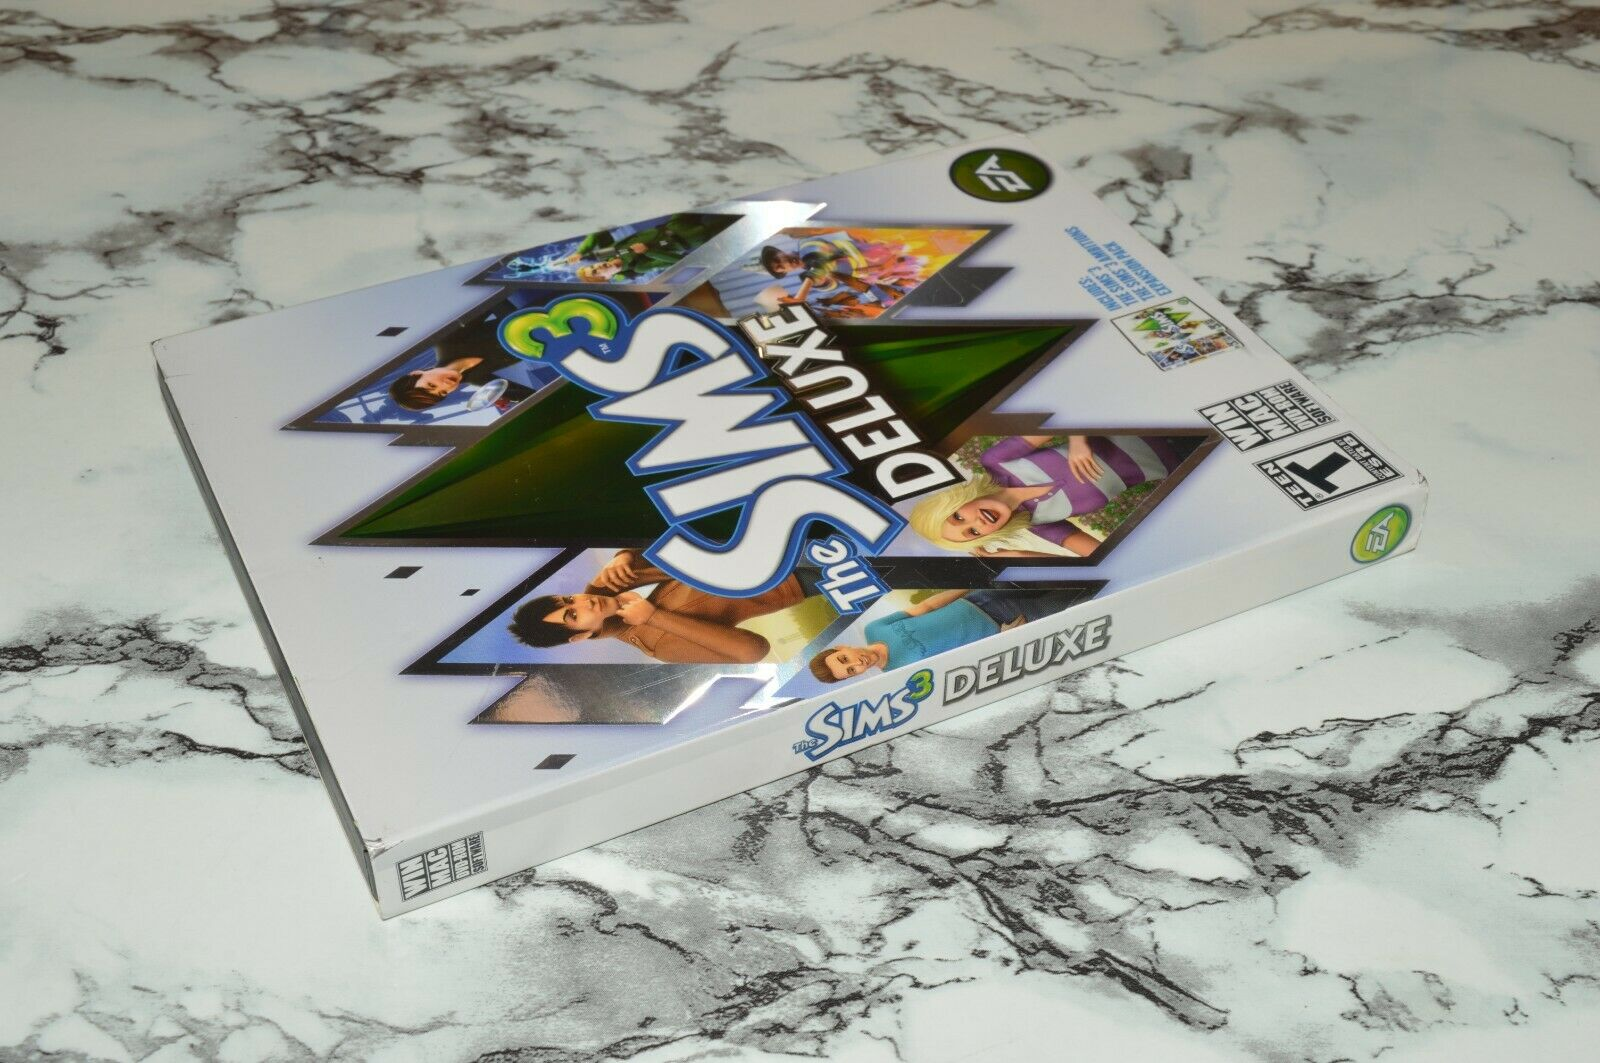 The Sims 3 Deluxe Sims 3 Ambitions Expansion Pack -- PC DVD-ROM -- READ  - $11.18